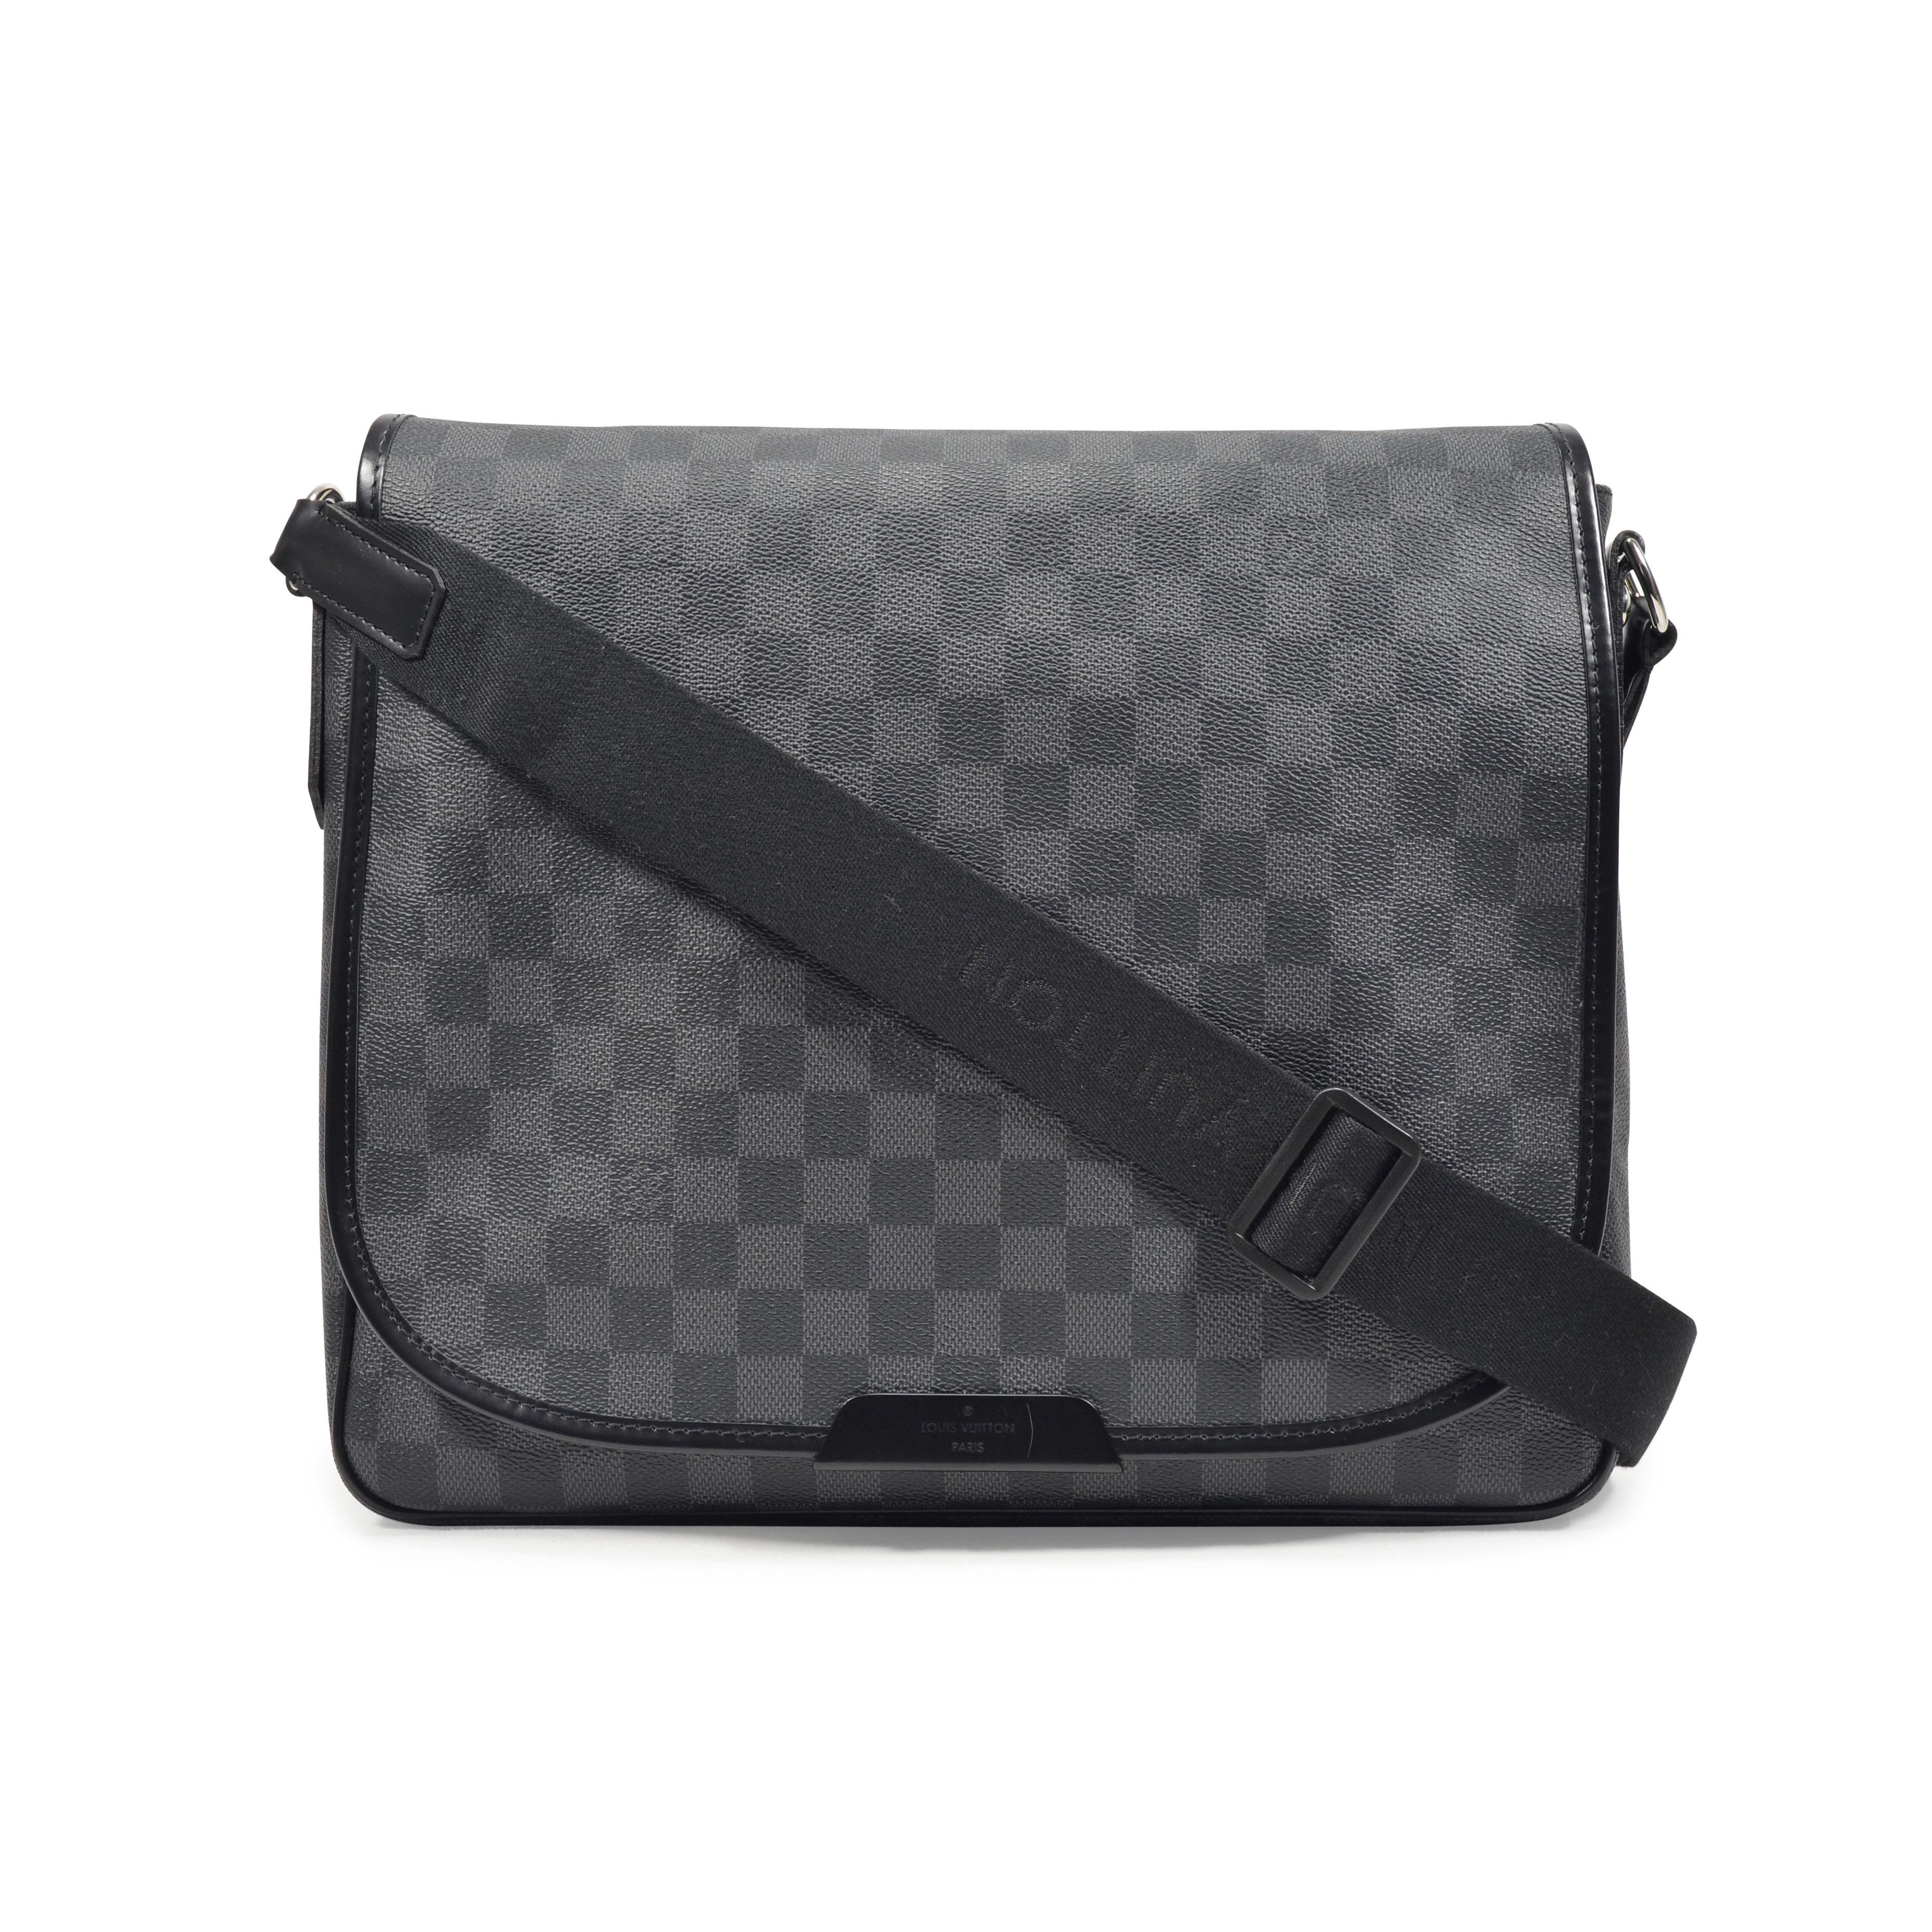 authentic pre owned louis vuitton district mm bag pss 311 00017